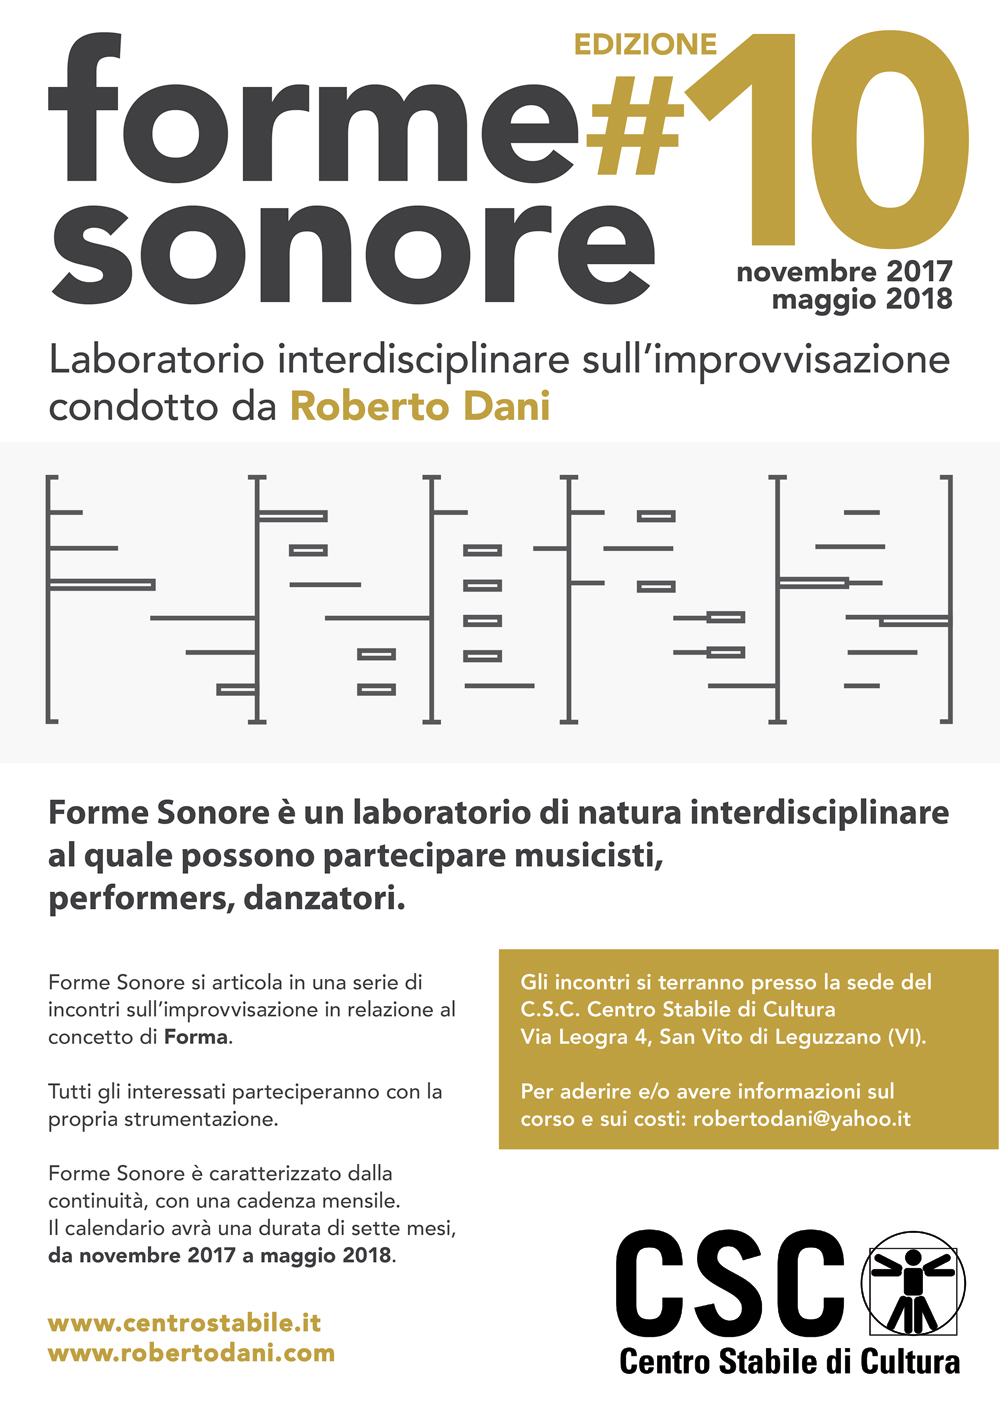 Forme Sonore #10